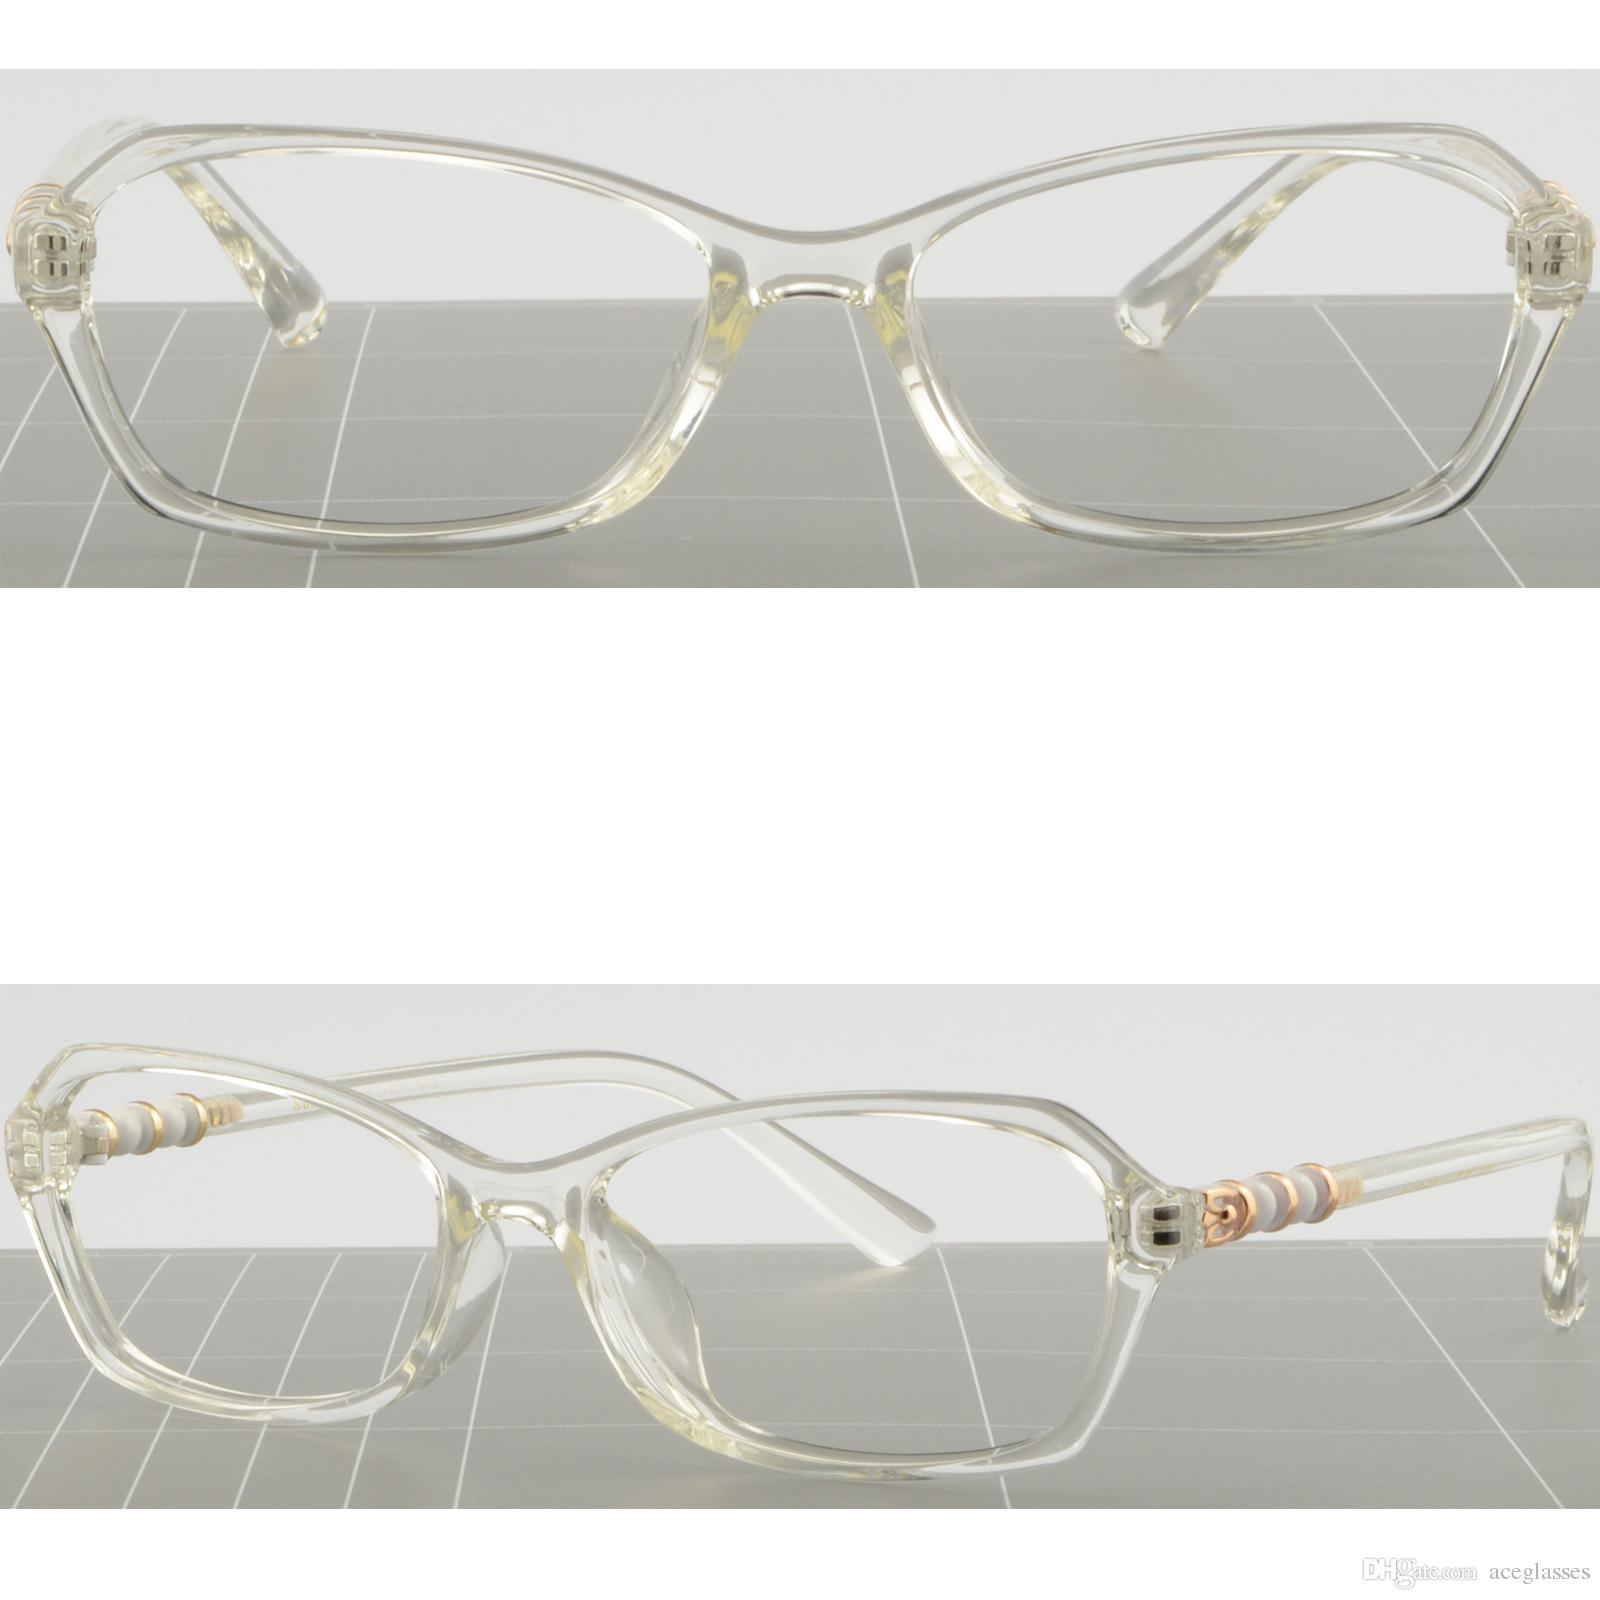 33ffdfd60b3 Light Women s Frame Clear Translucent Flexible TR90 Plastic ...